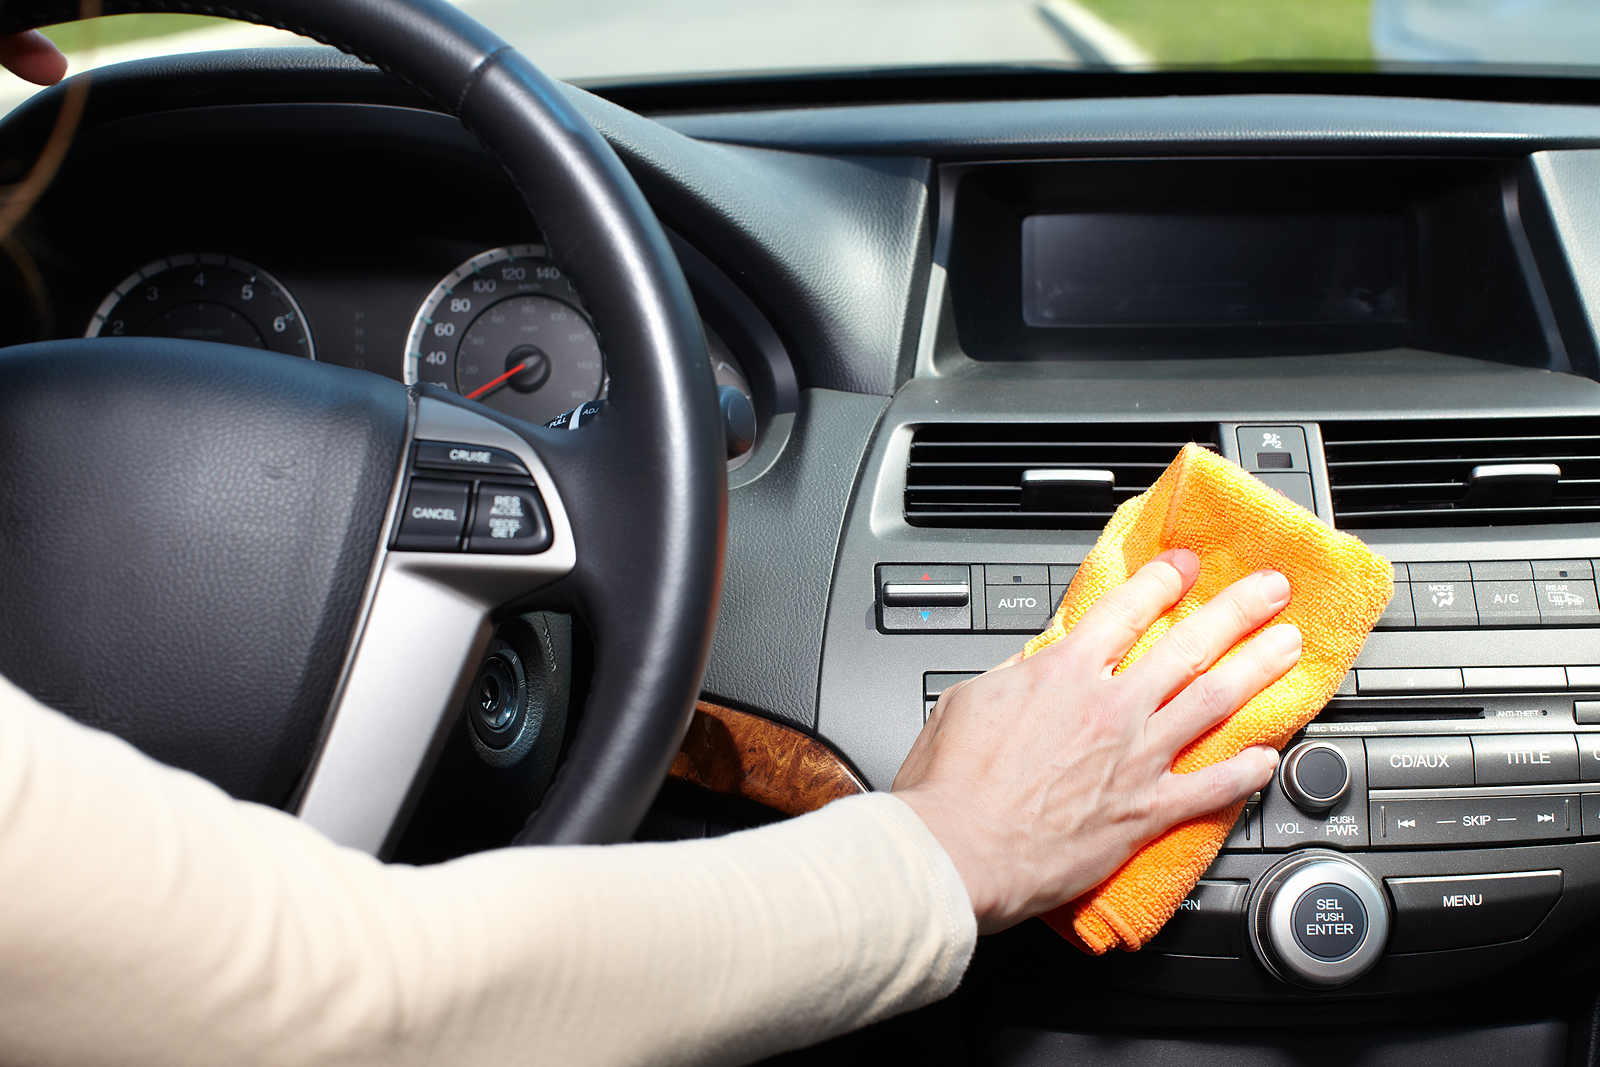 Superb Products To Clean Stains In Your Car